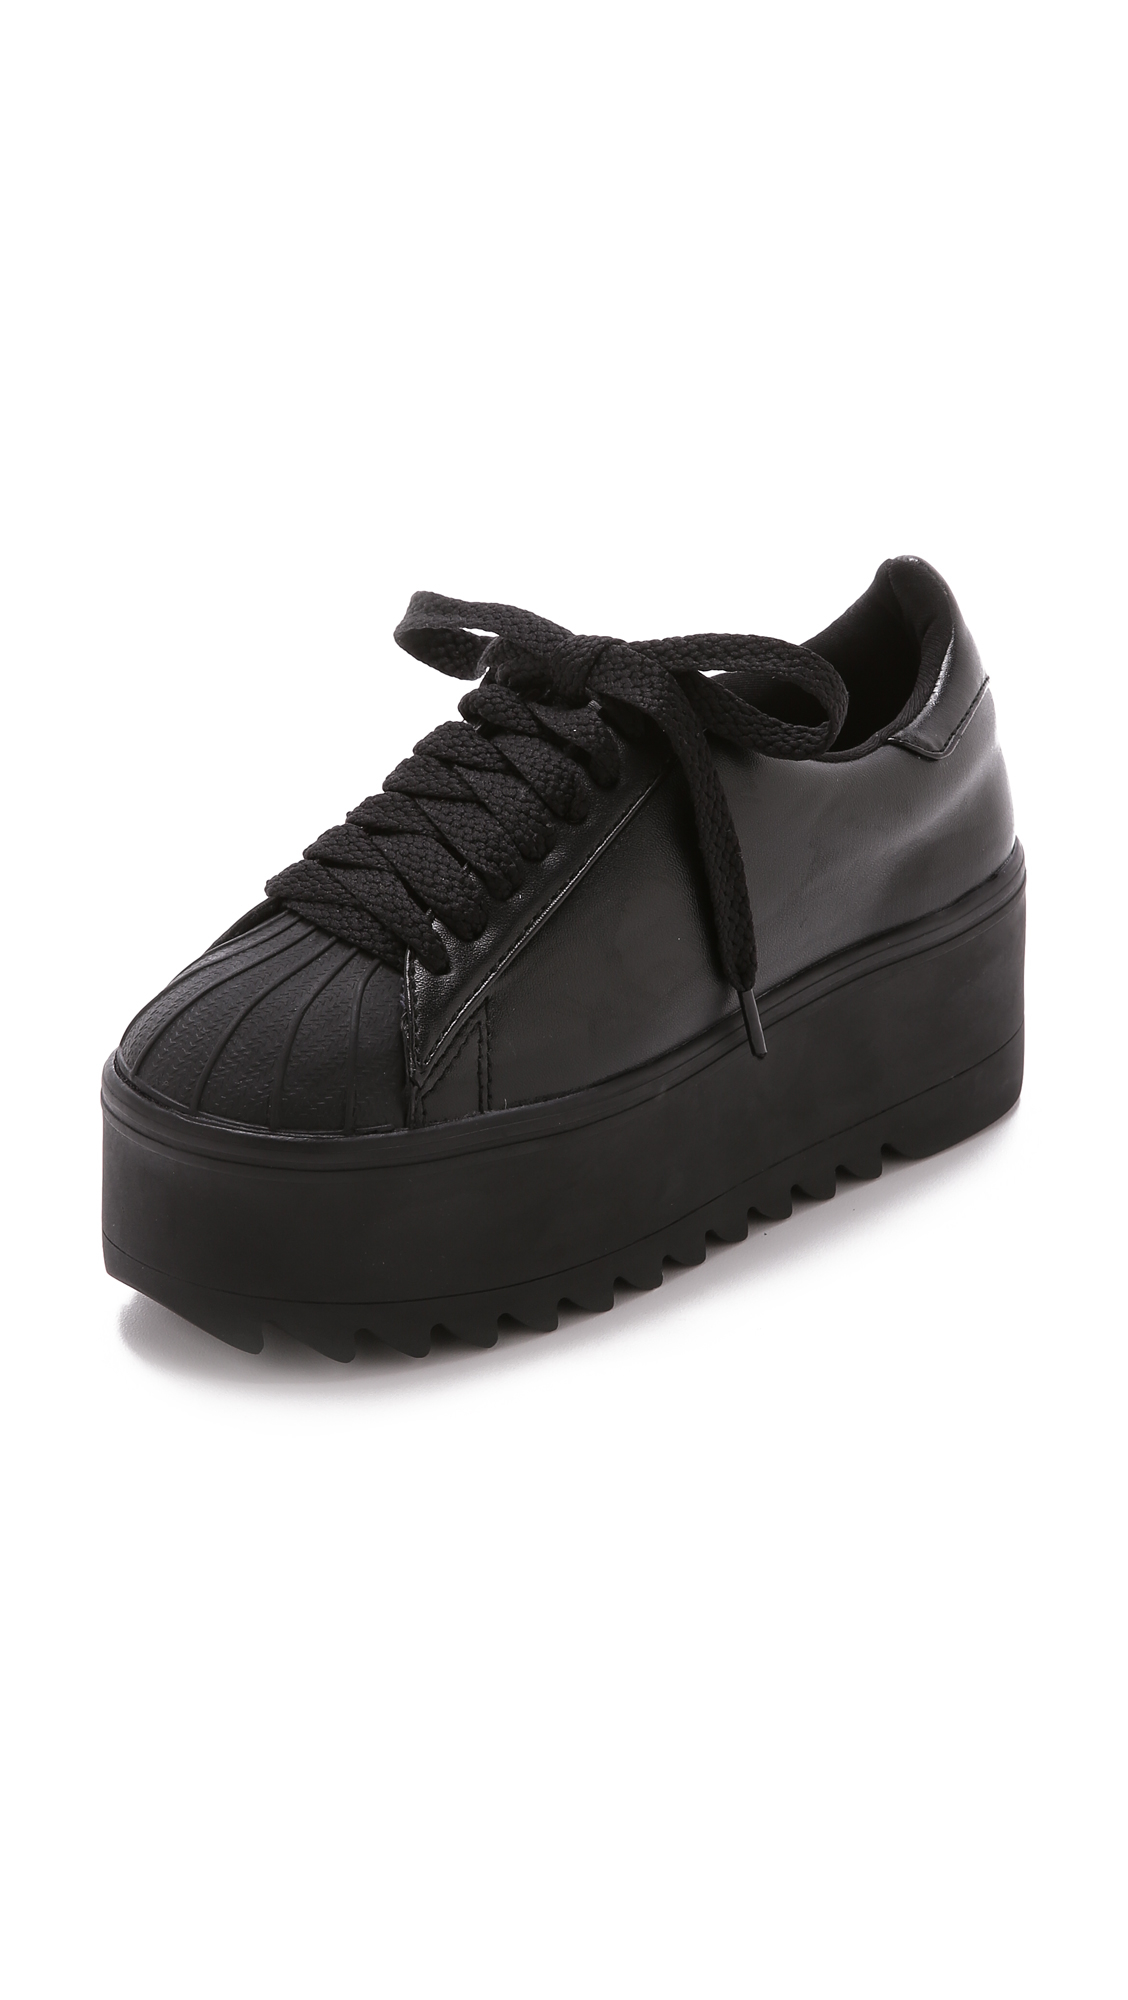 Jeffrey Campbell Jeffrey Campbell Synergy Sneakers Black reliable best sale for sale good selling sale online zRauN5dh